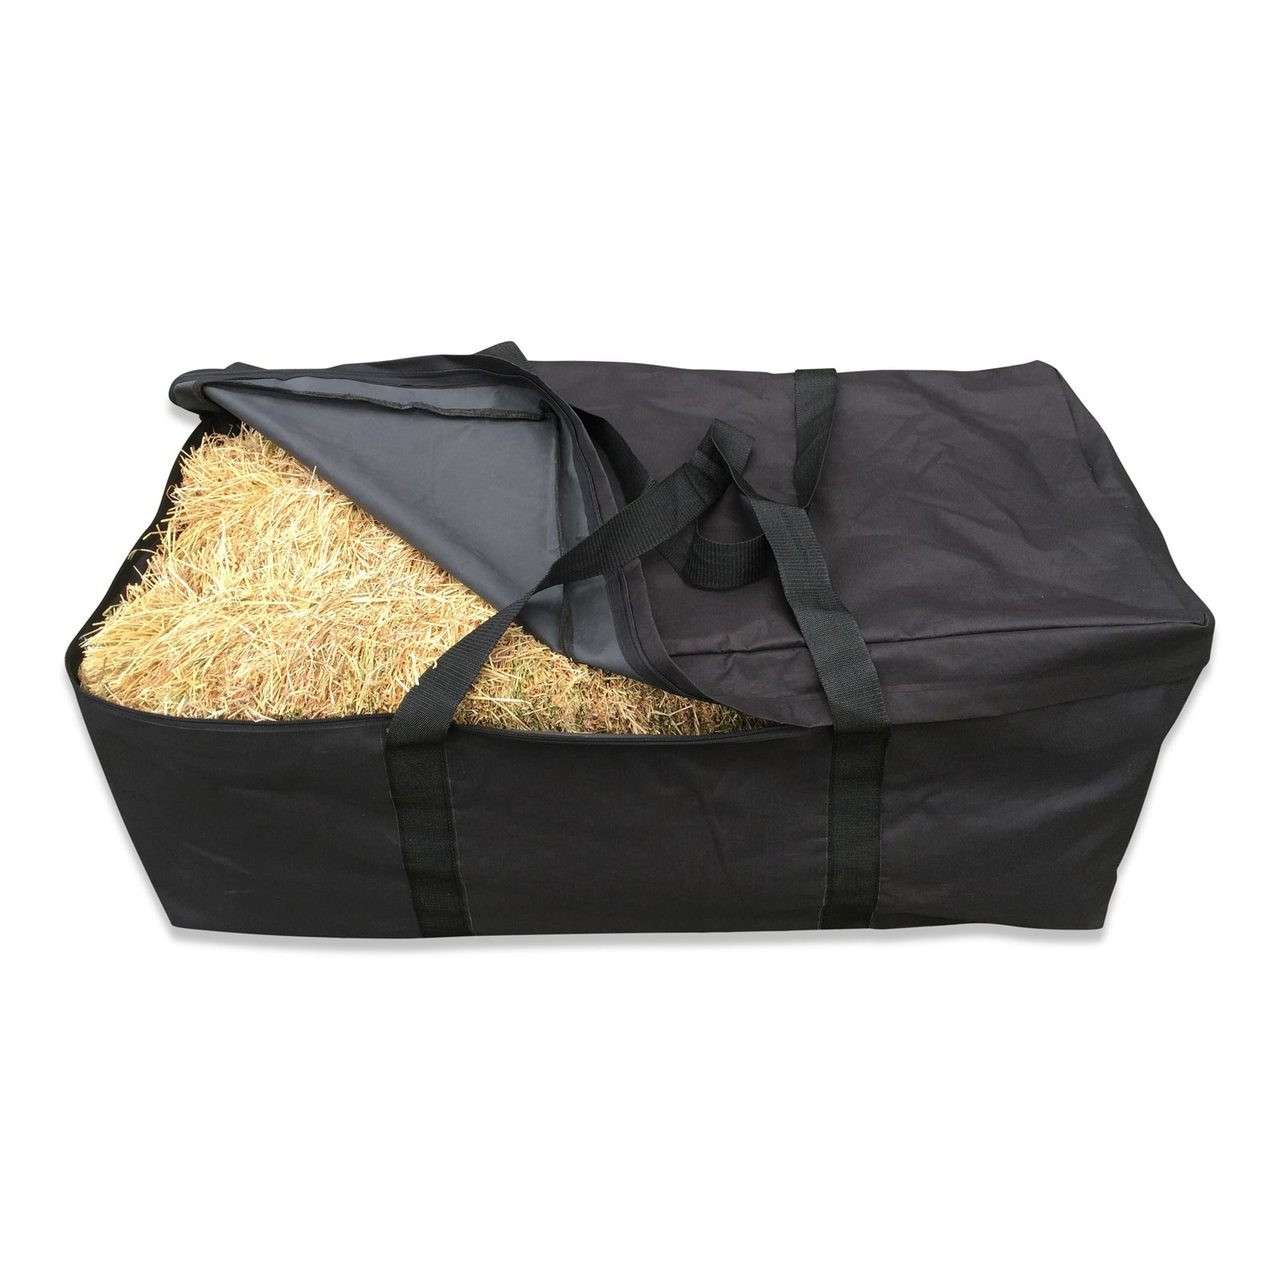 Hay Bale Bag Carry And Storage Bag - Front View  sc 1 st  P&ered Pony & Hay Bale Bag/Hay Bale Bag Australia